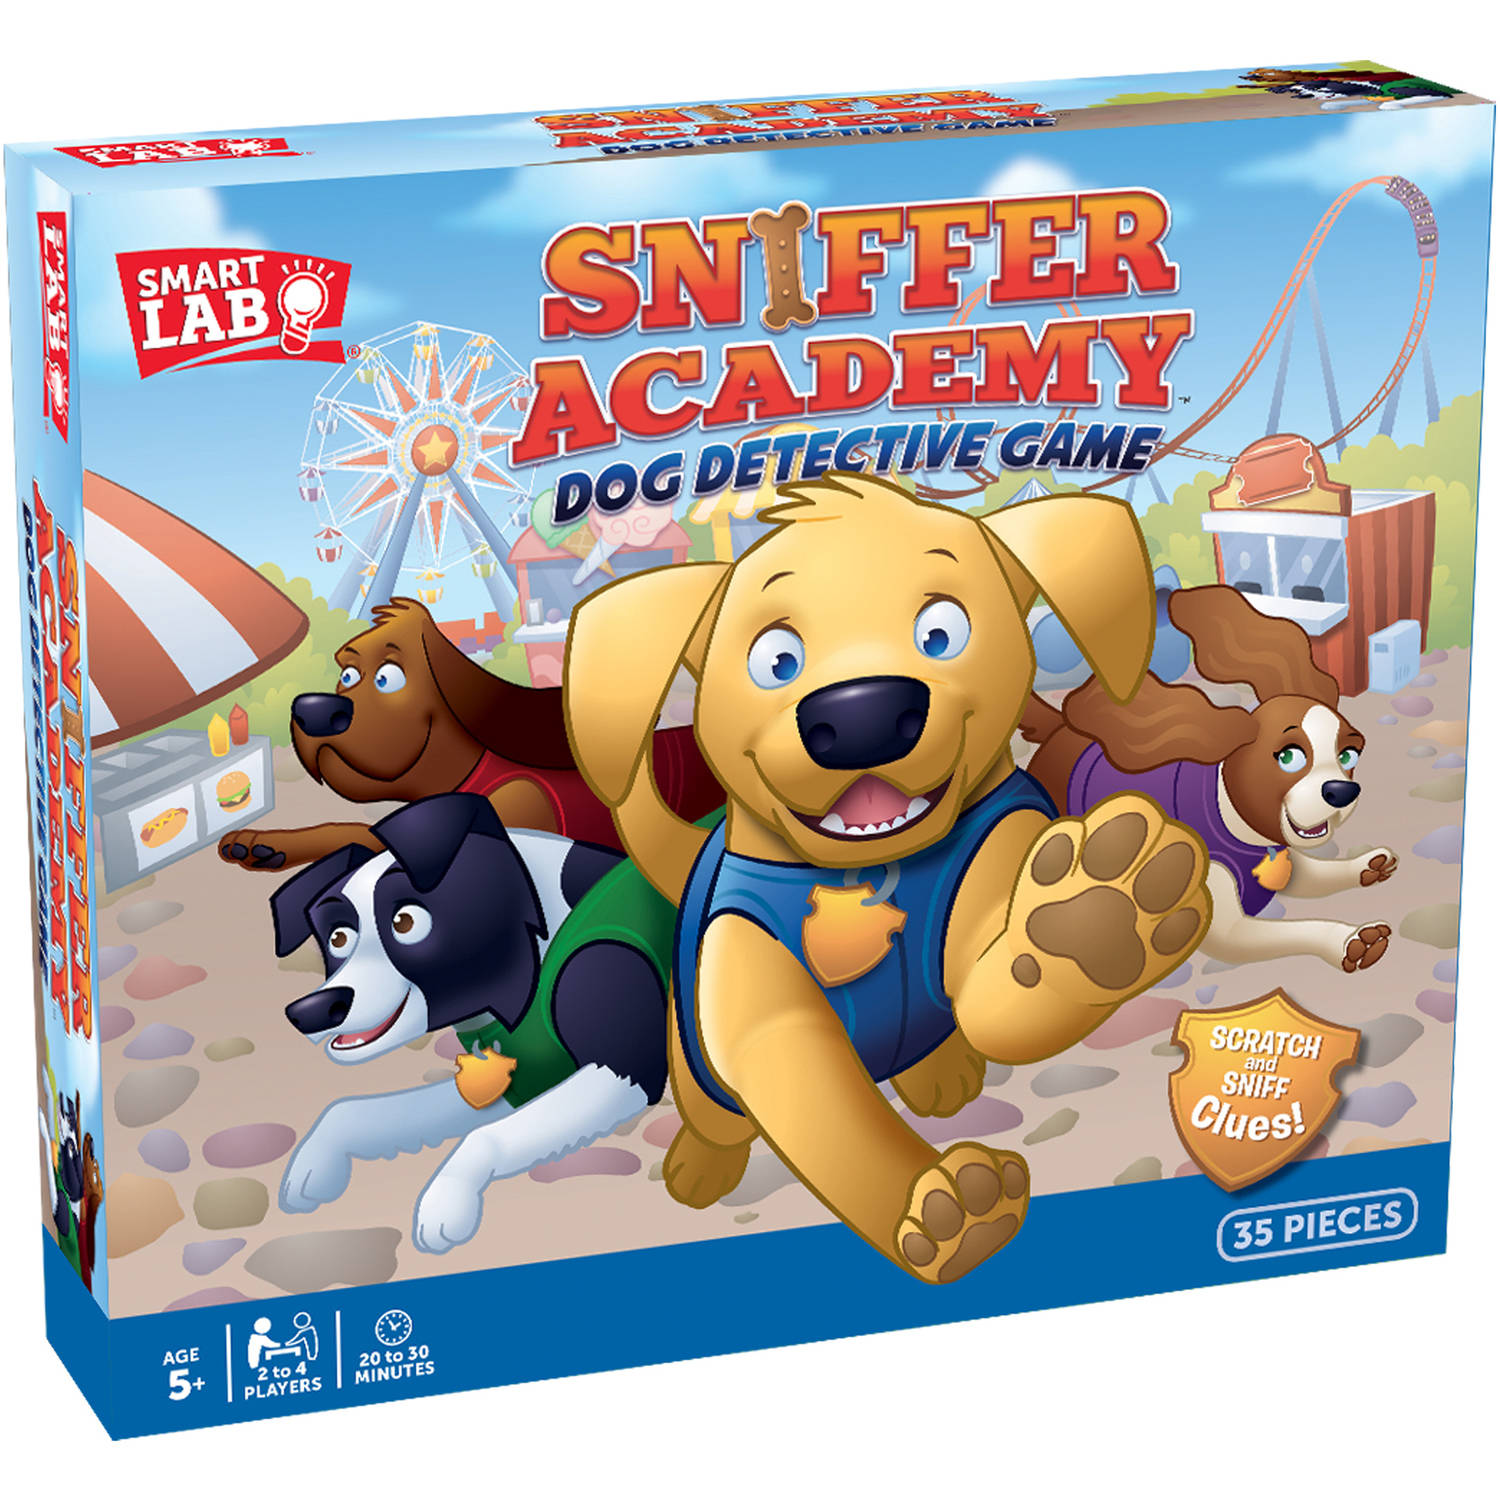 Smart Lab Toys Sniffer Academy Game by Smart Lab Toys